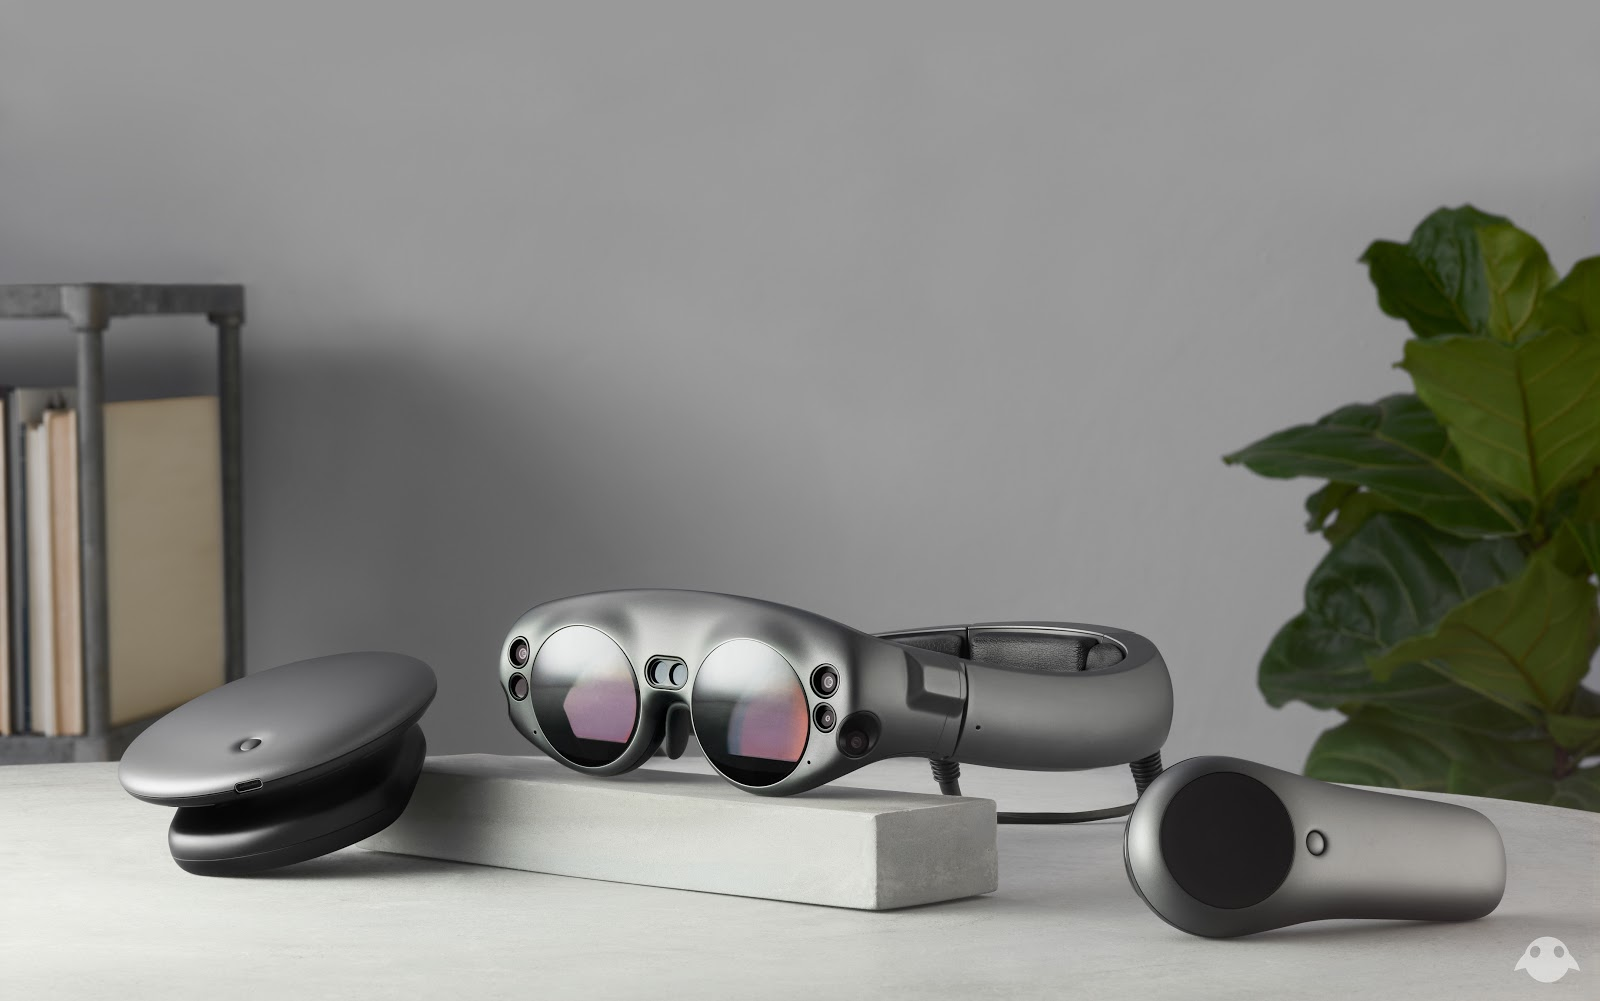 Unreal Engine 4 supports Magic Leap One™